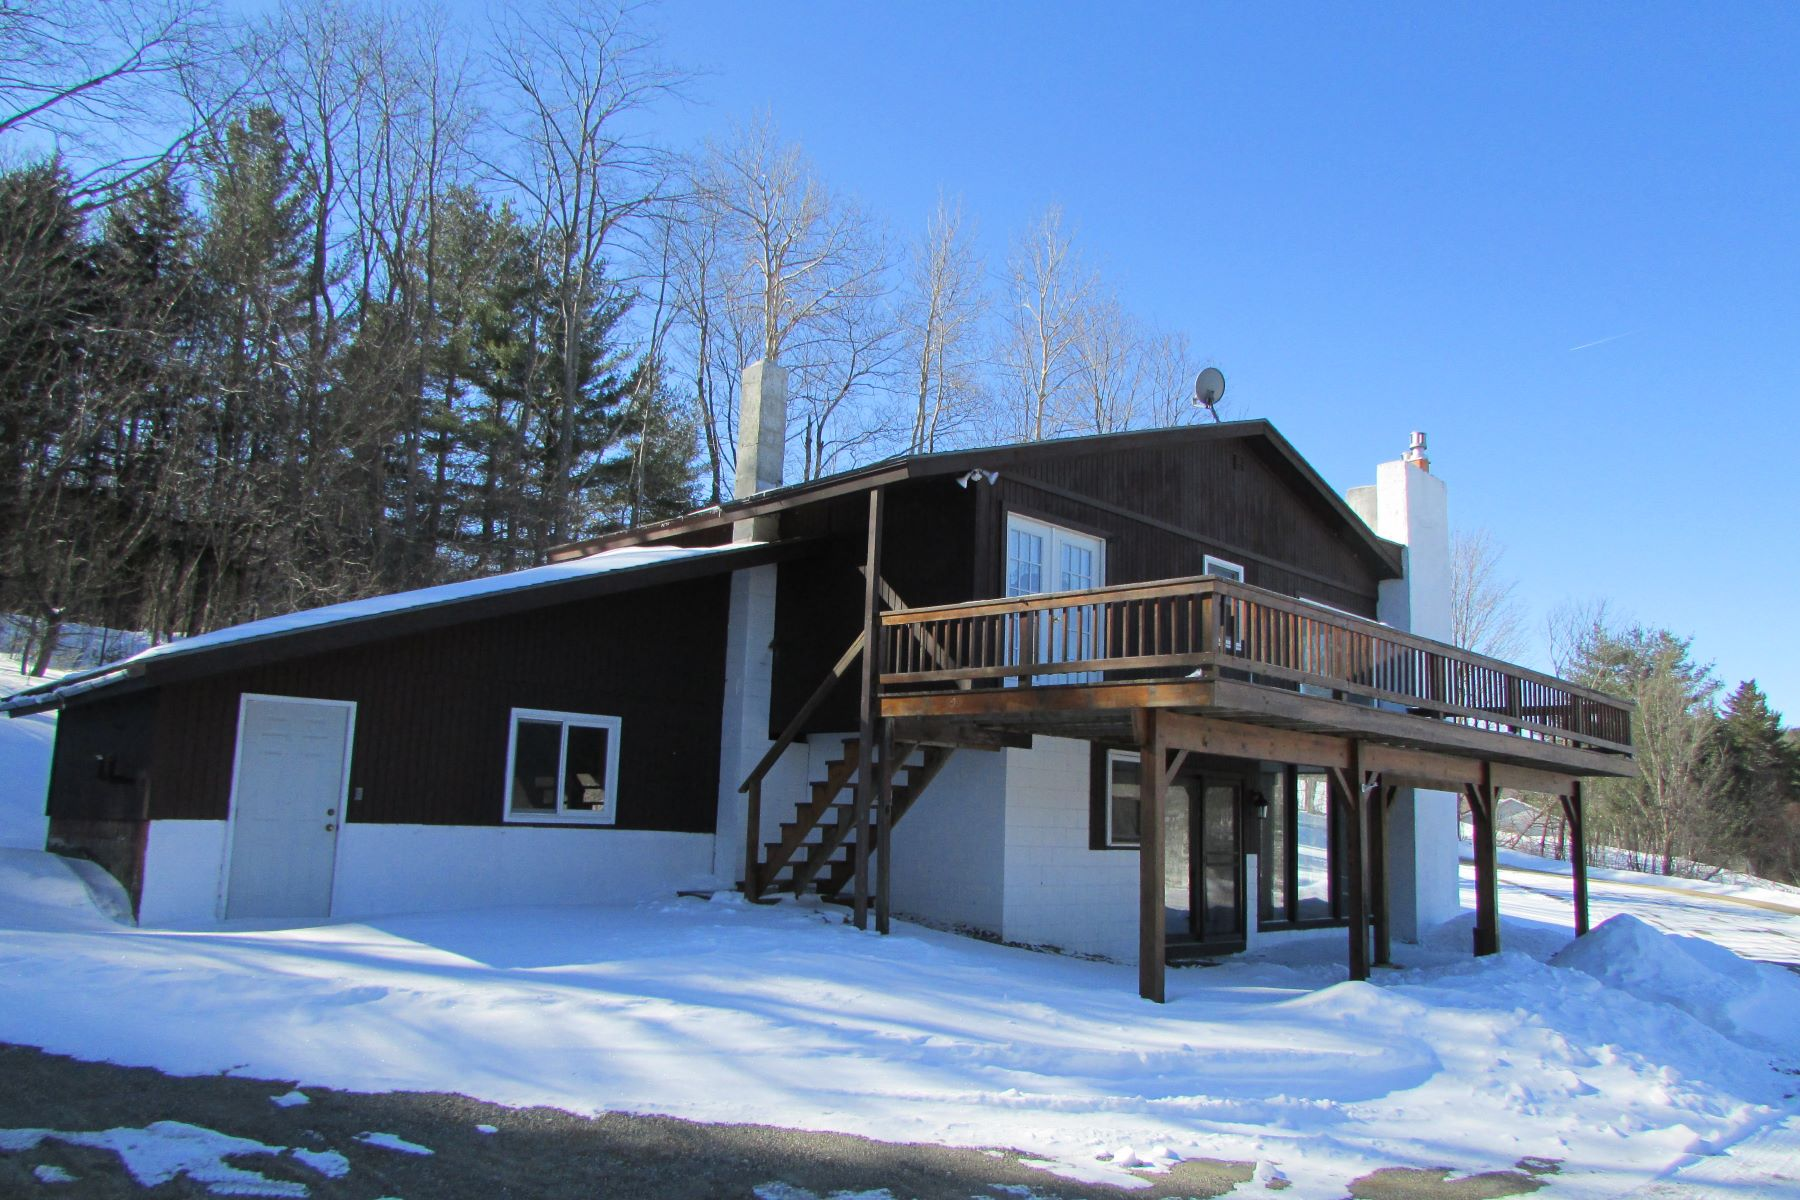 Casa Unifamiliar por un Venta en Chalet with Mountain View 79 Hillside Dr Wilmington, Vermont, 05363 Estados Unidos